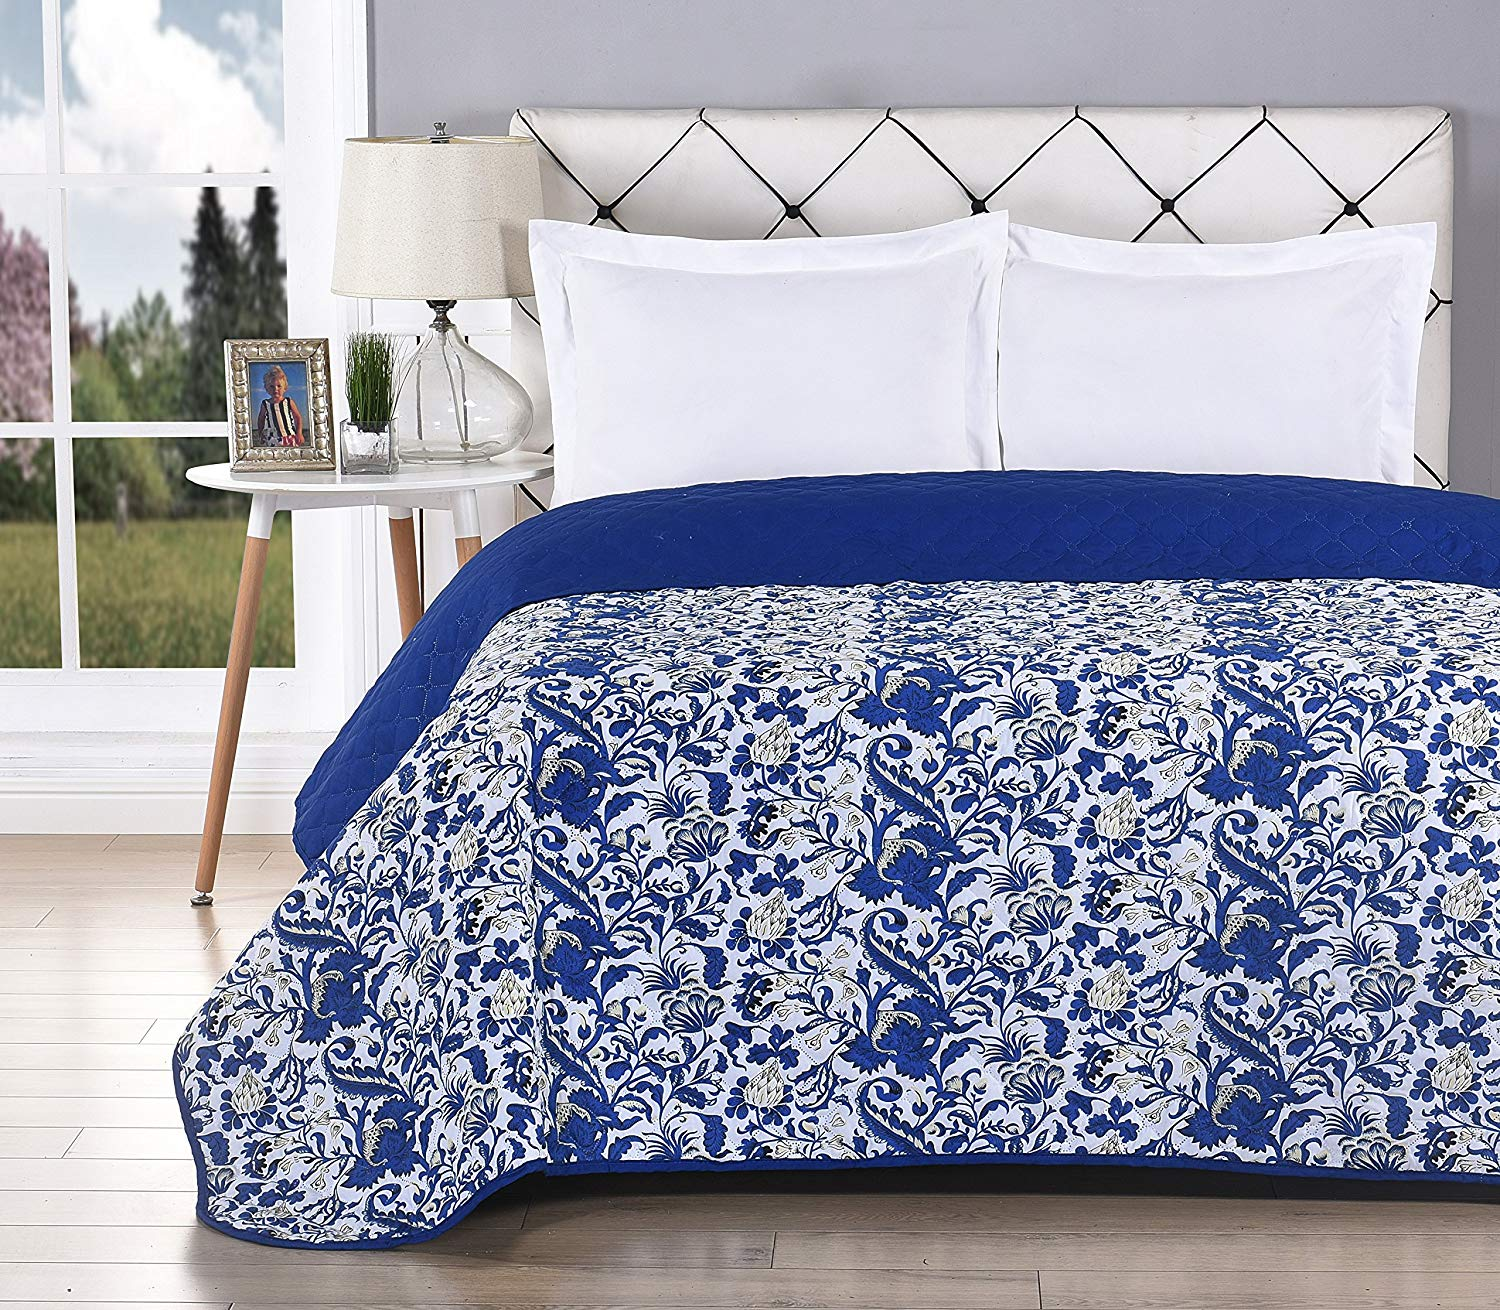 Color E Bedding Softie Reversible Quilt and Pillow Sham, Ultra Soft Washable with Luxury Pinsonic Quilting for all seasons (2 Piece Twin Quilt Set, Royal Blue)